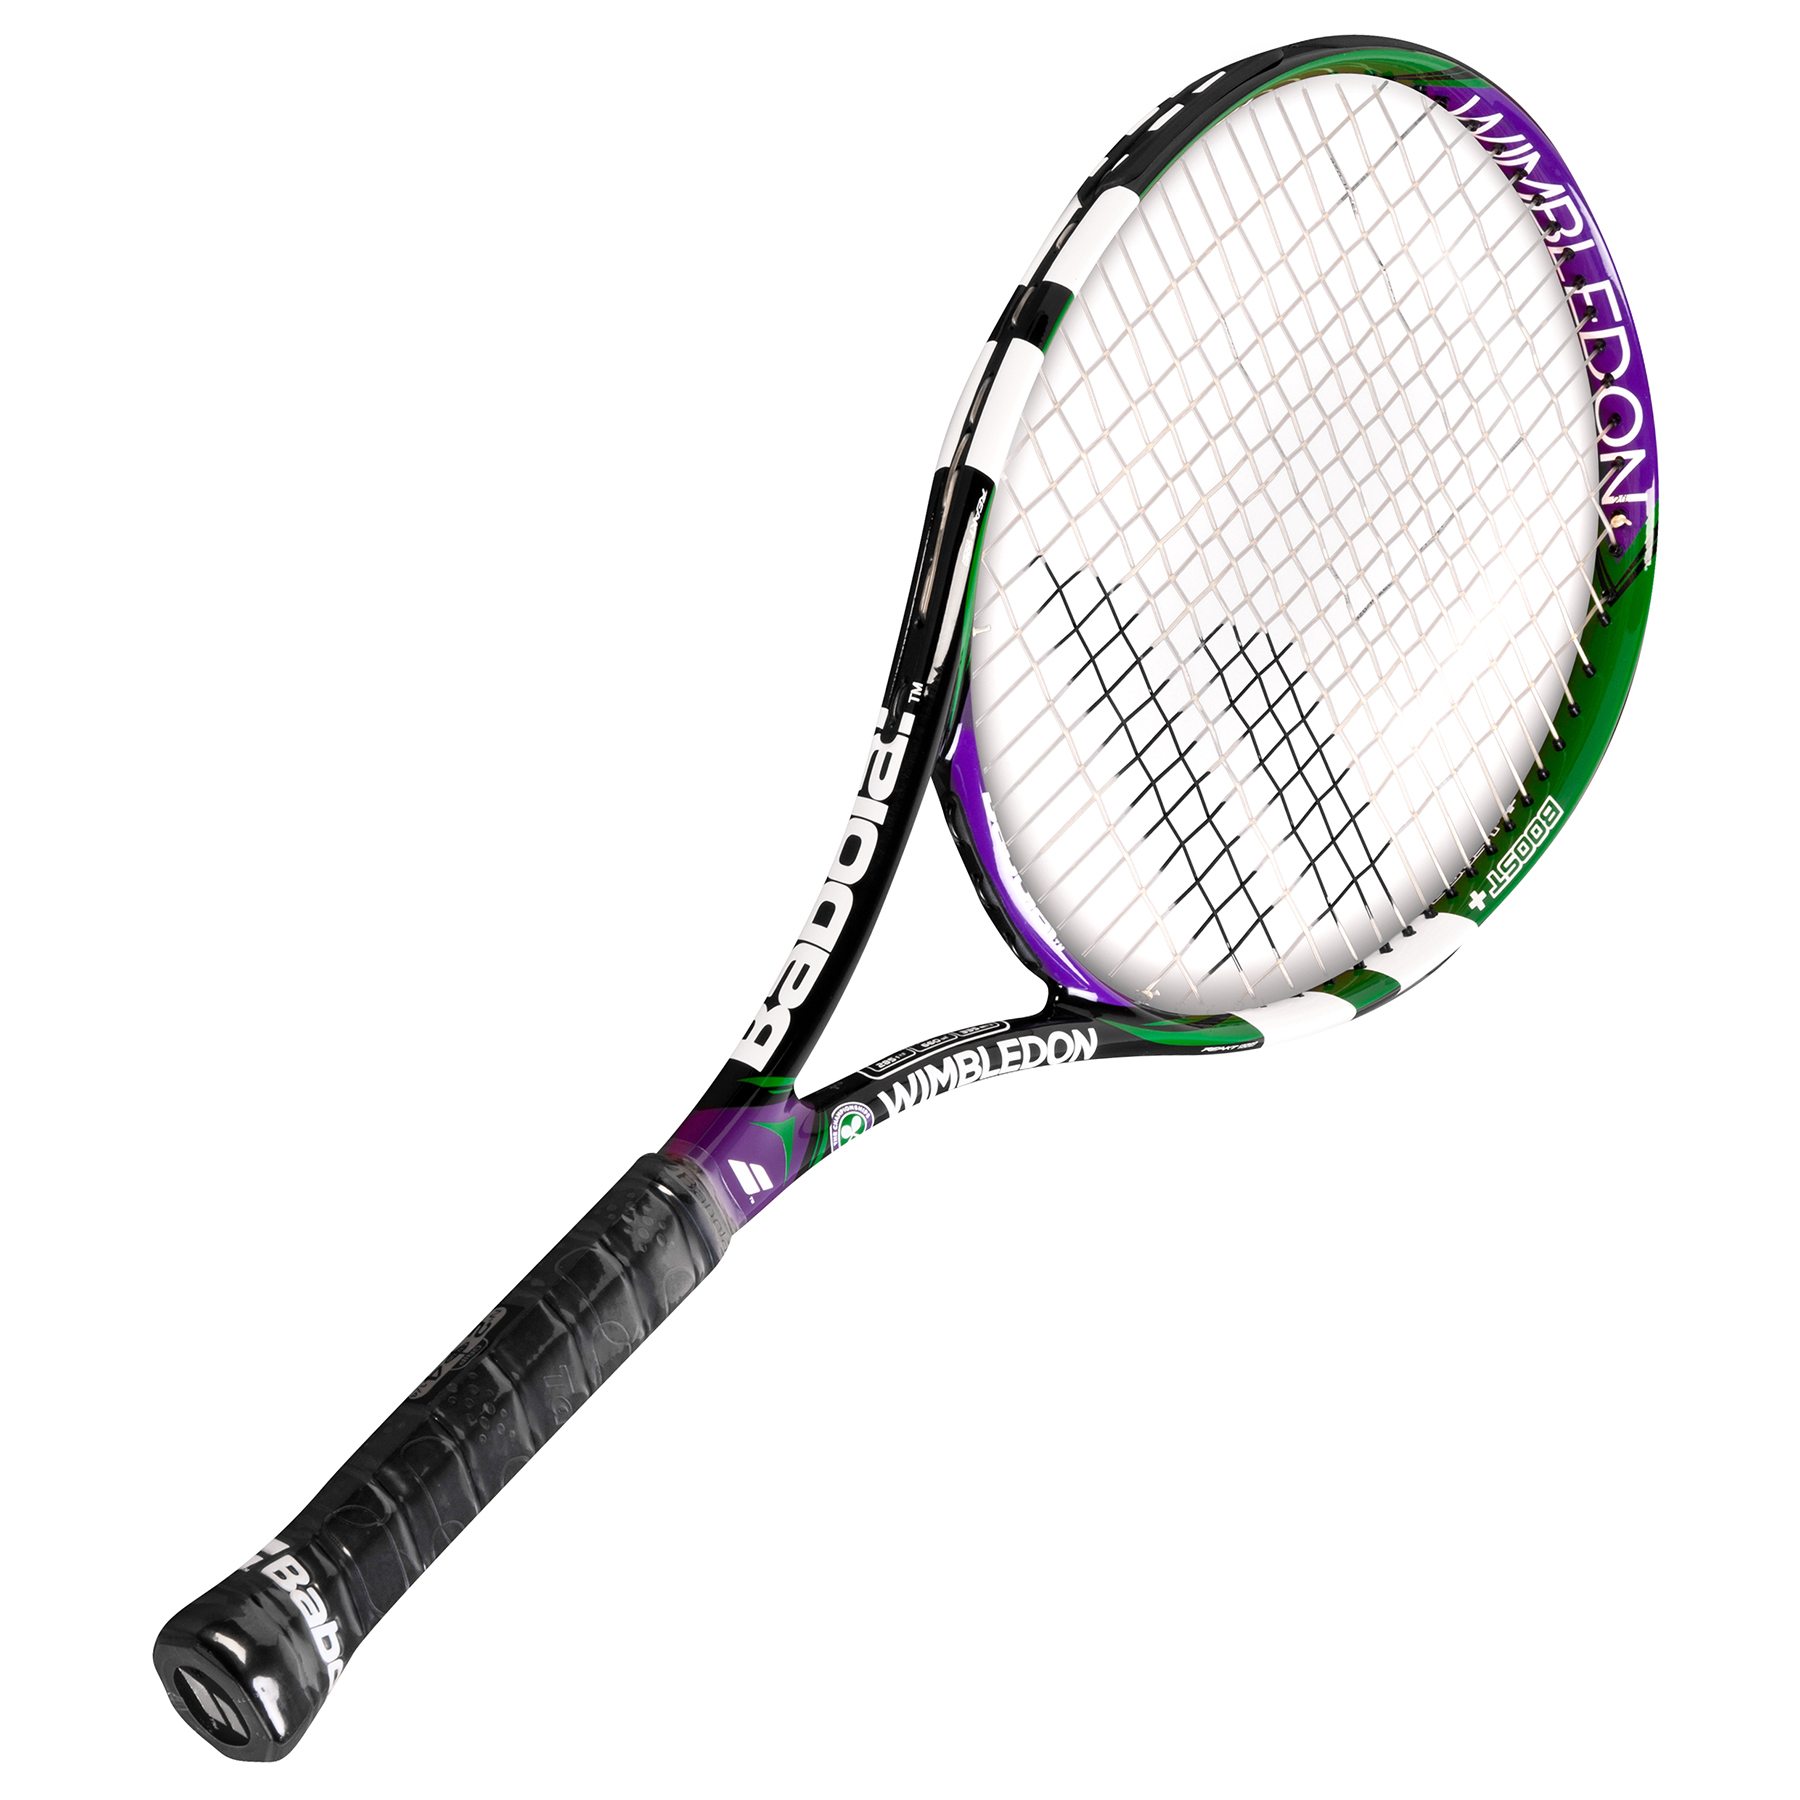 Wimbledon Reakt Tour Racket Black